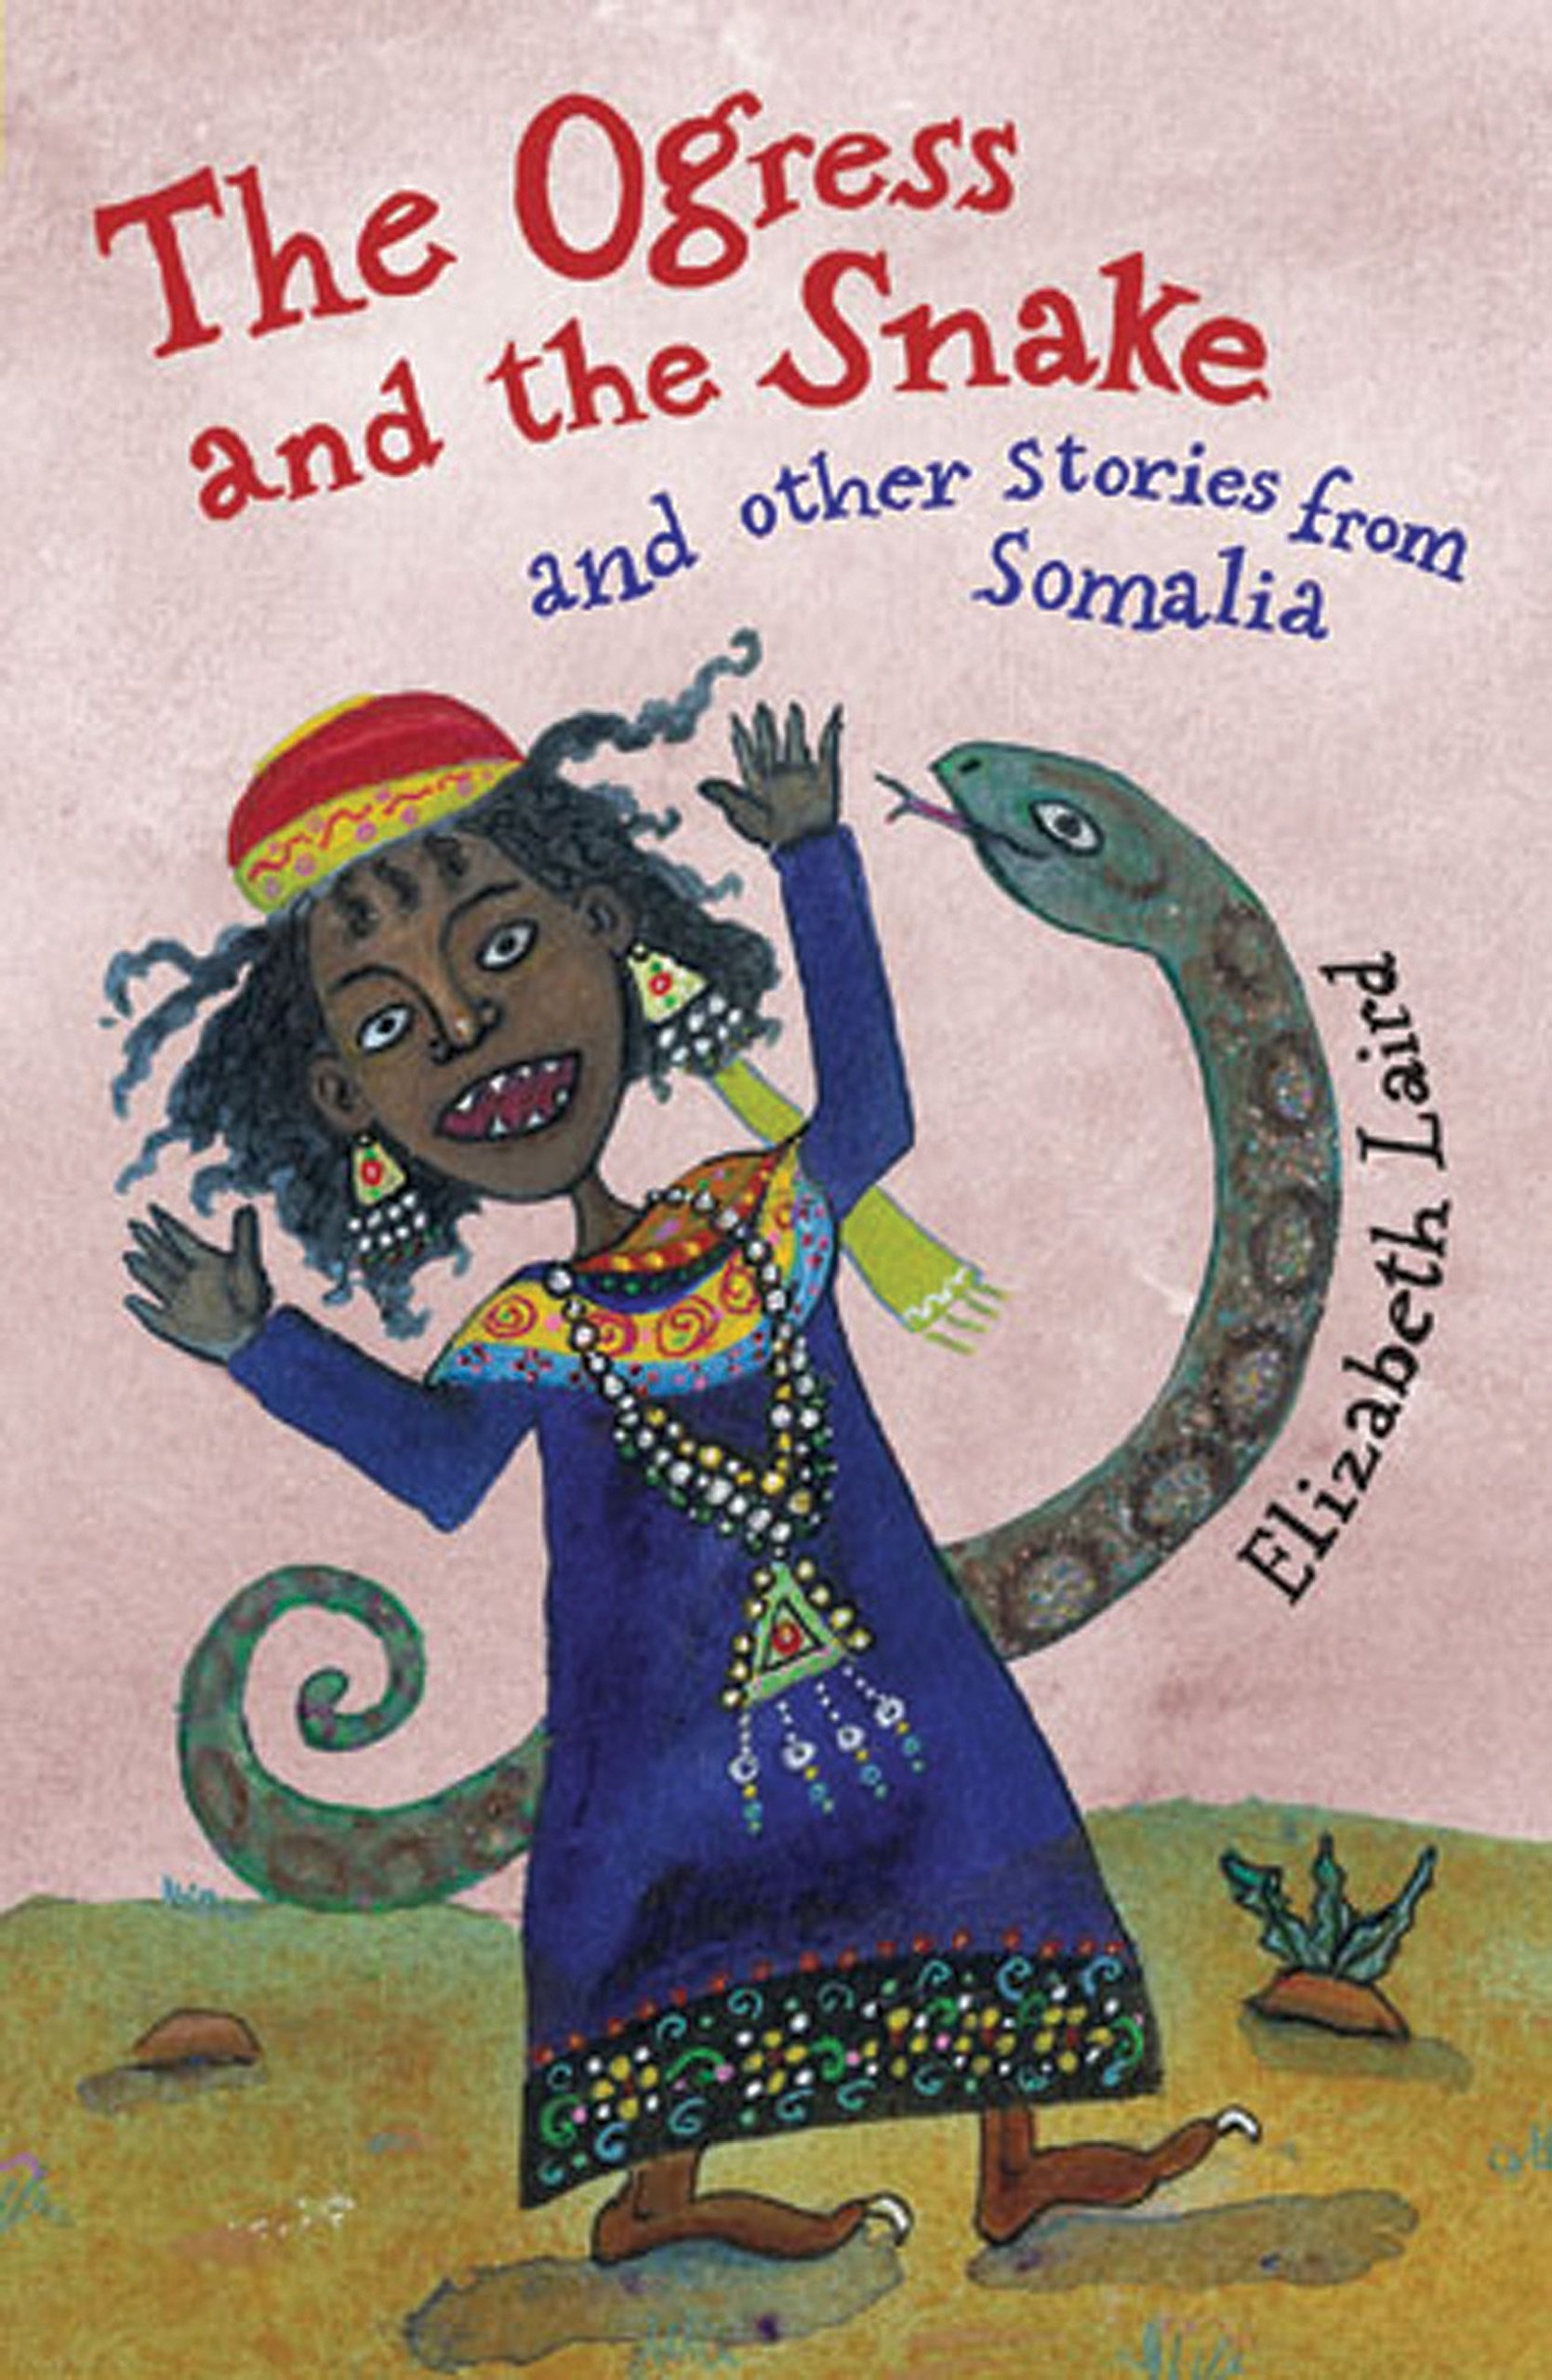 Download The Ogress and the Snake: and Other Stories from Somalia (Folktales from Around the World) PDF